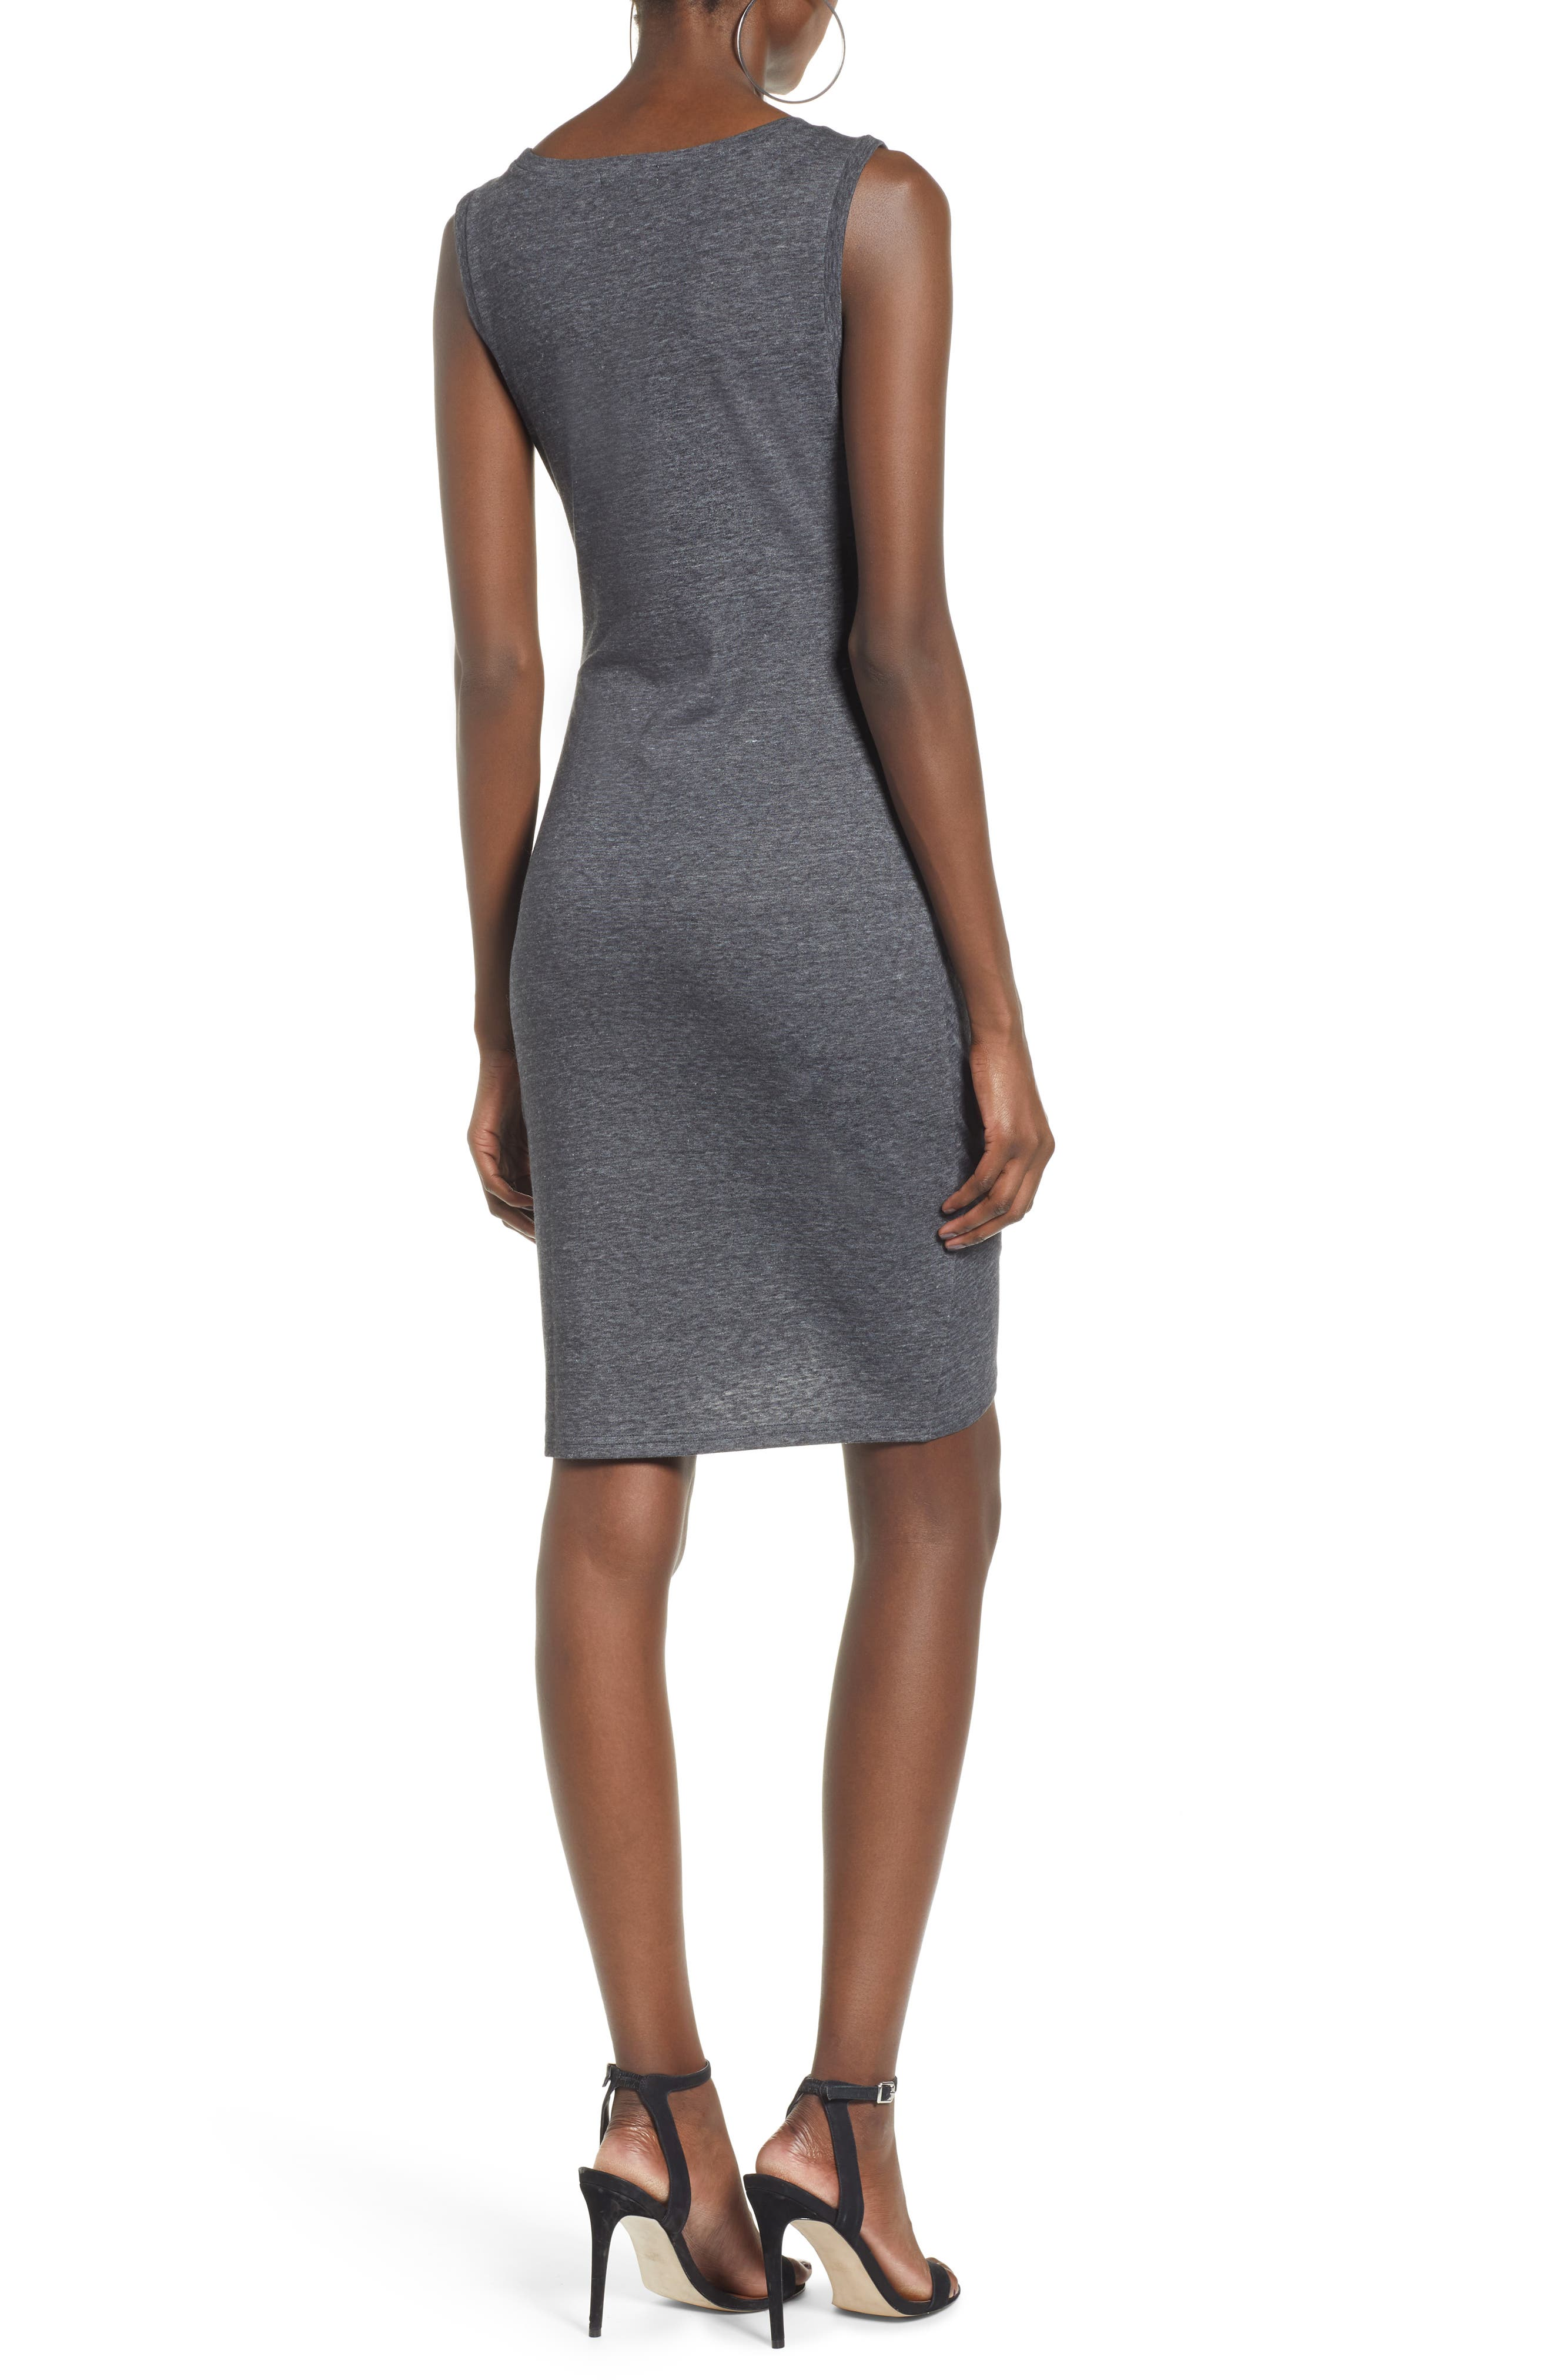 Ruched Body-Con Tank Dress,                             Alternate thumbnail 2, color,                             GREY MEDIUM CHARCOAL HEATHER